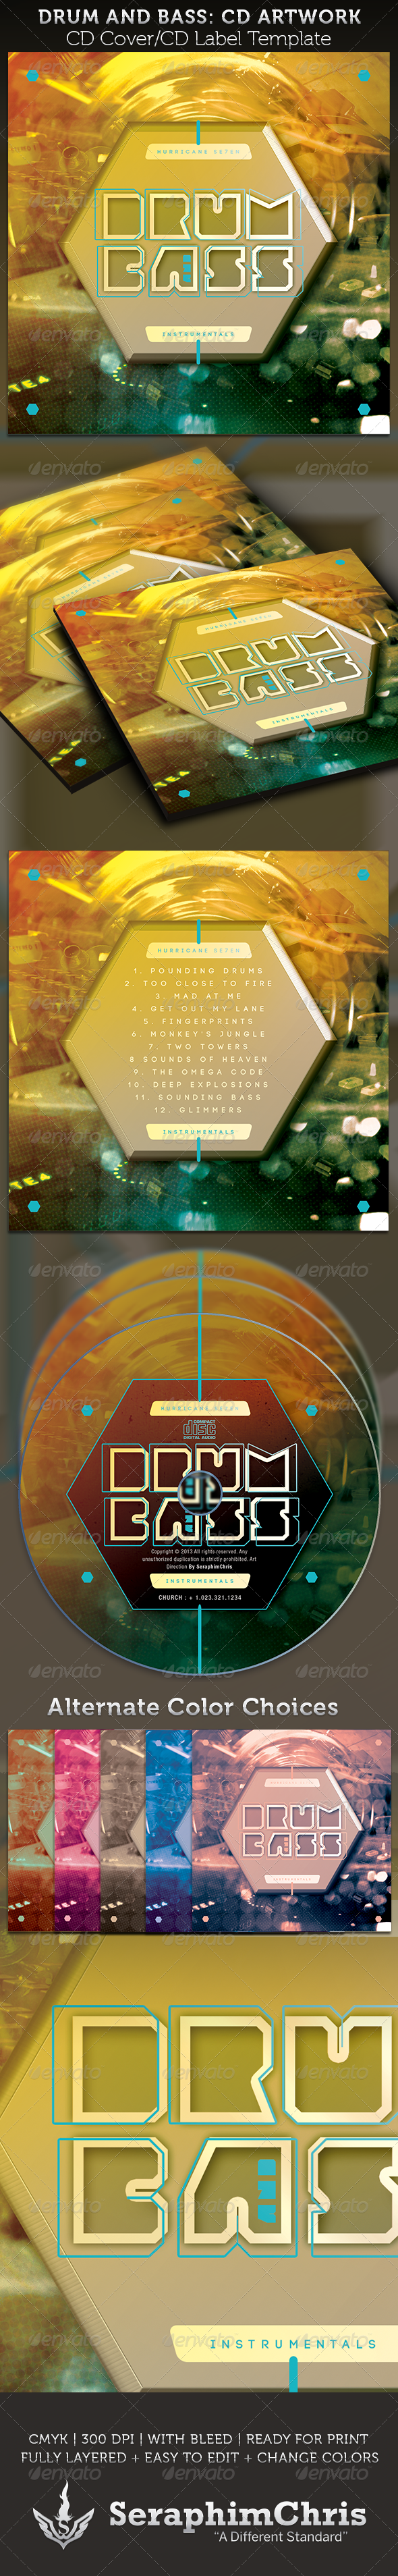 Drum and Bass CD Cover Artwork Template - CD & DVD artwork Print Templates